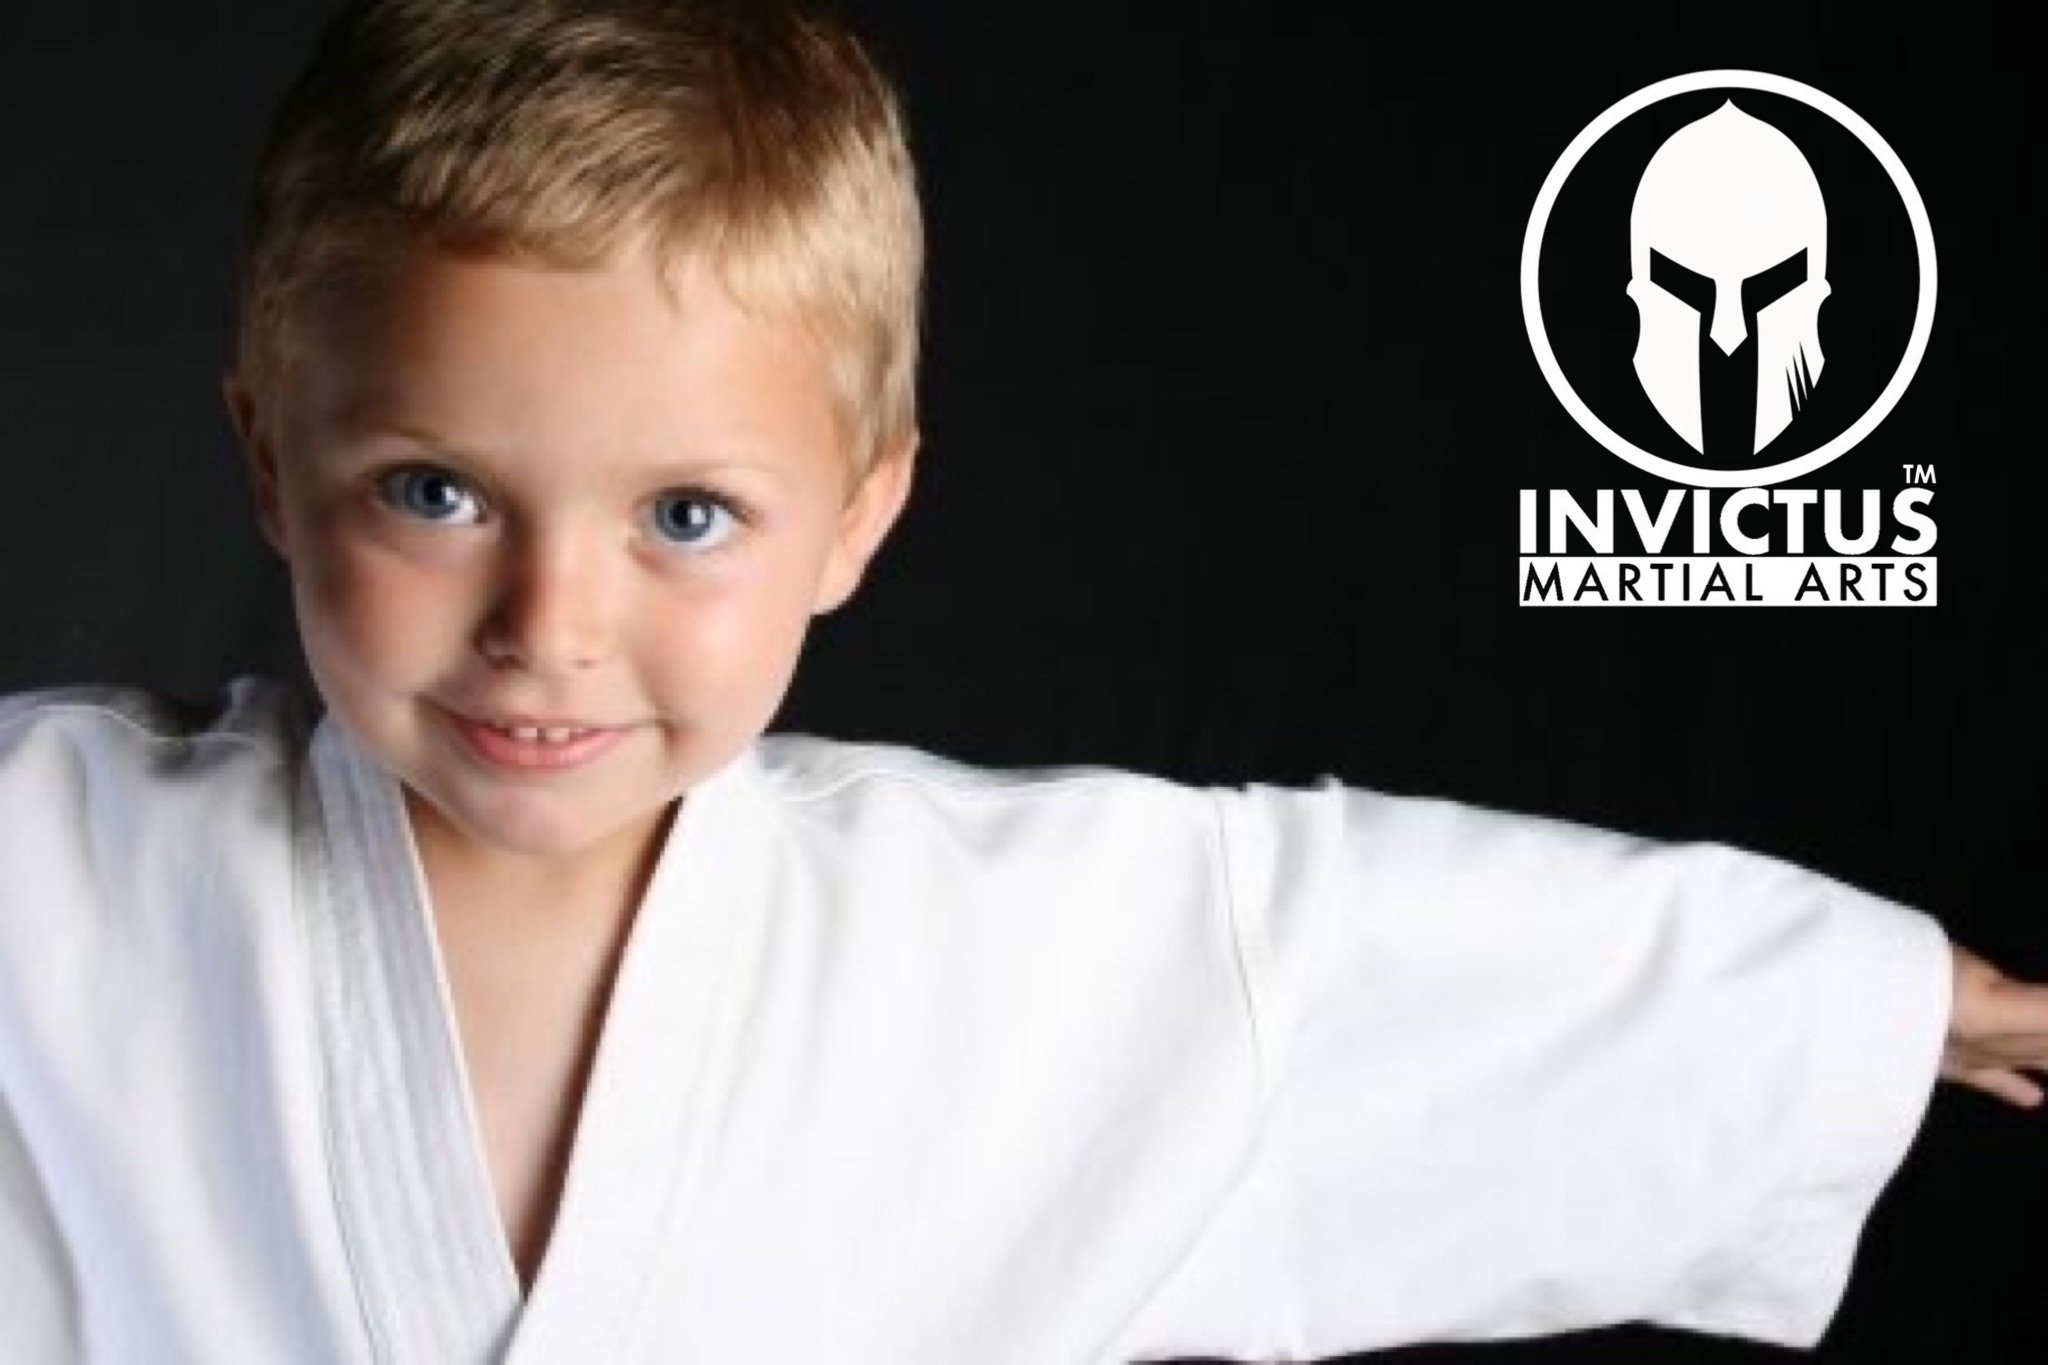 What Is The Best Age To Start Martial Arts?